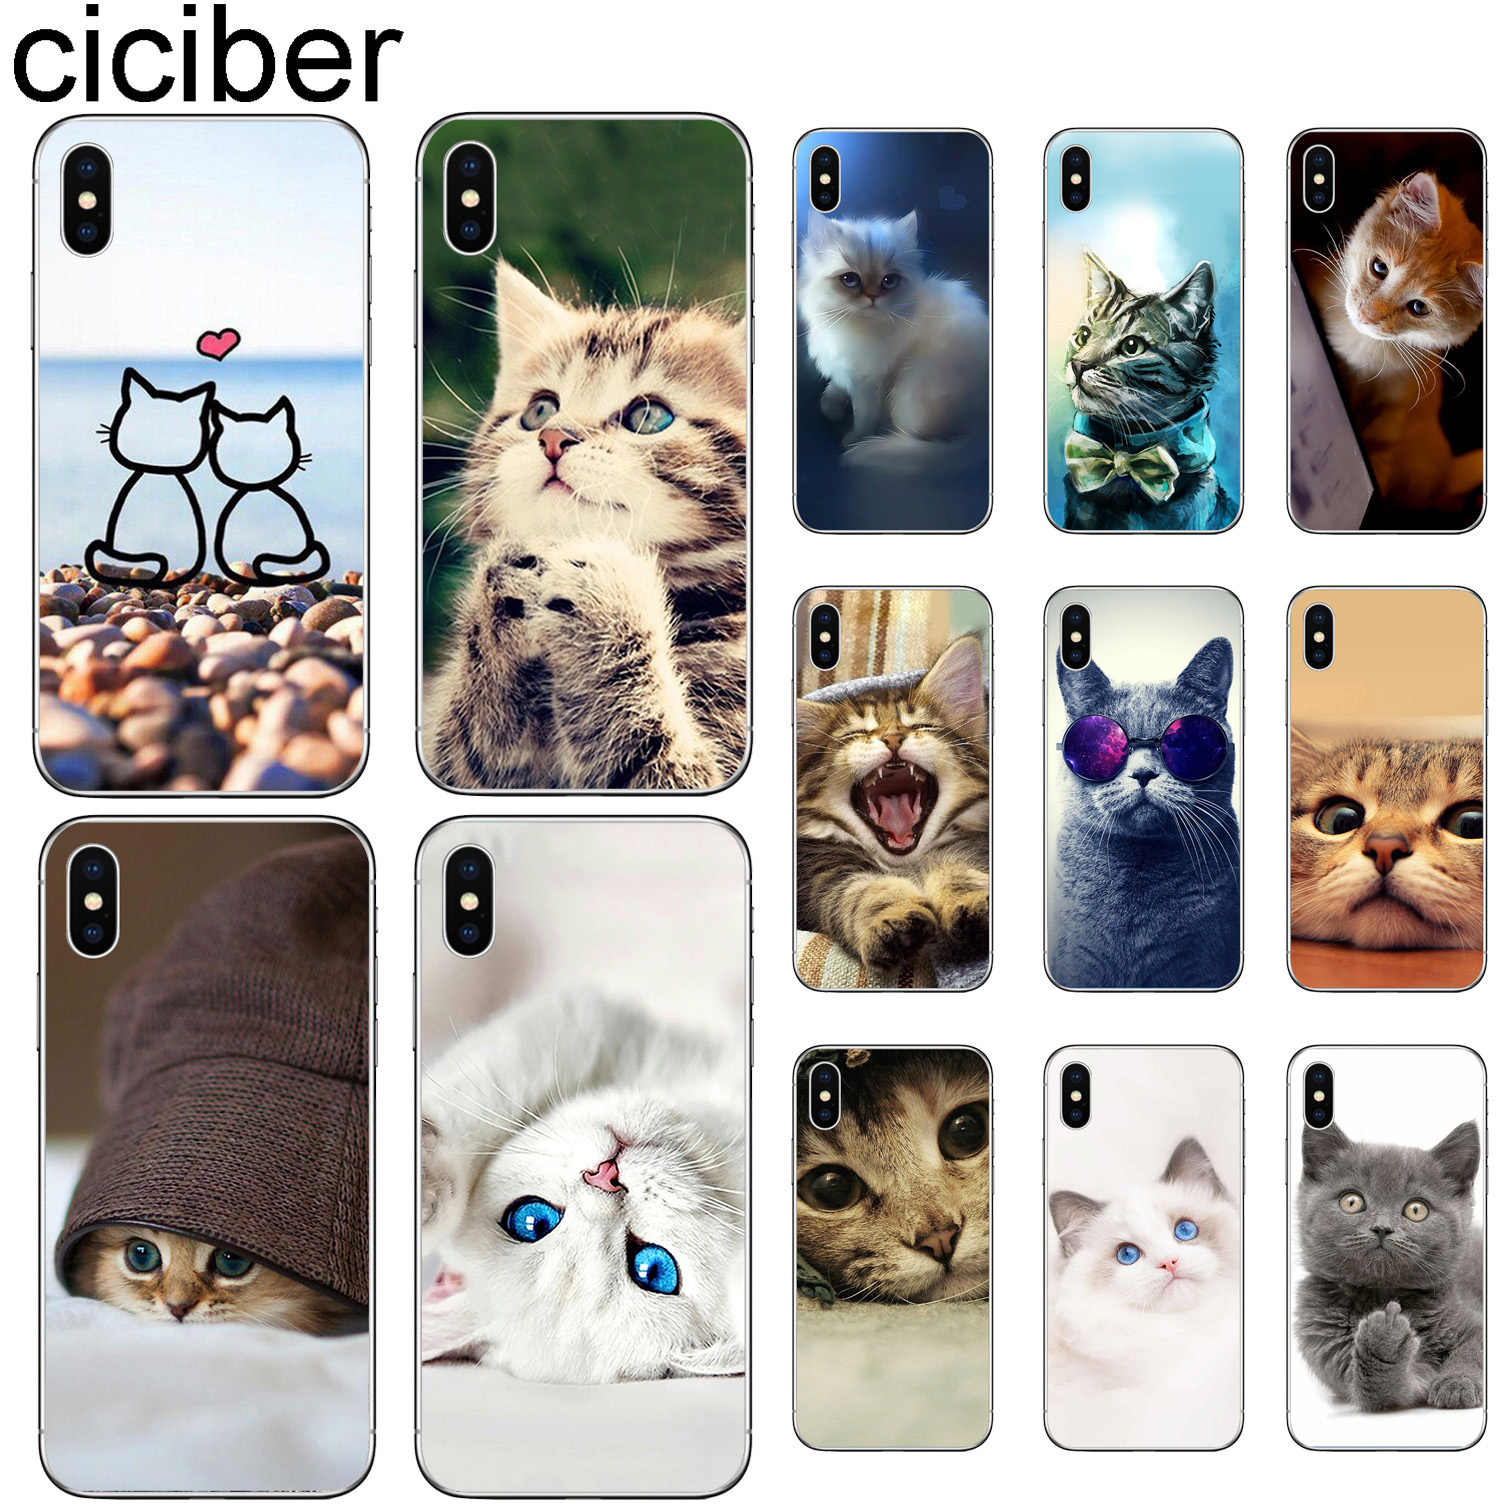 ciciber Cute Cat Kitten Phone Cases For iPhone 11 Pro XR X XS MAX Funda Coque For Iphone 7 8 5S 6 6S Plus SE Soft TPU Cover Capa